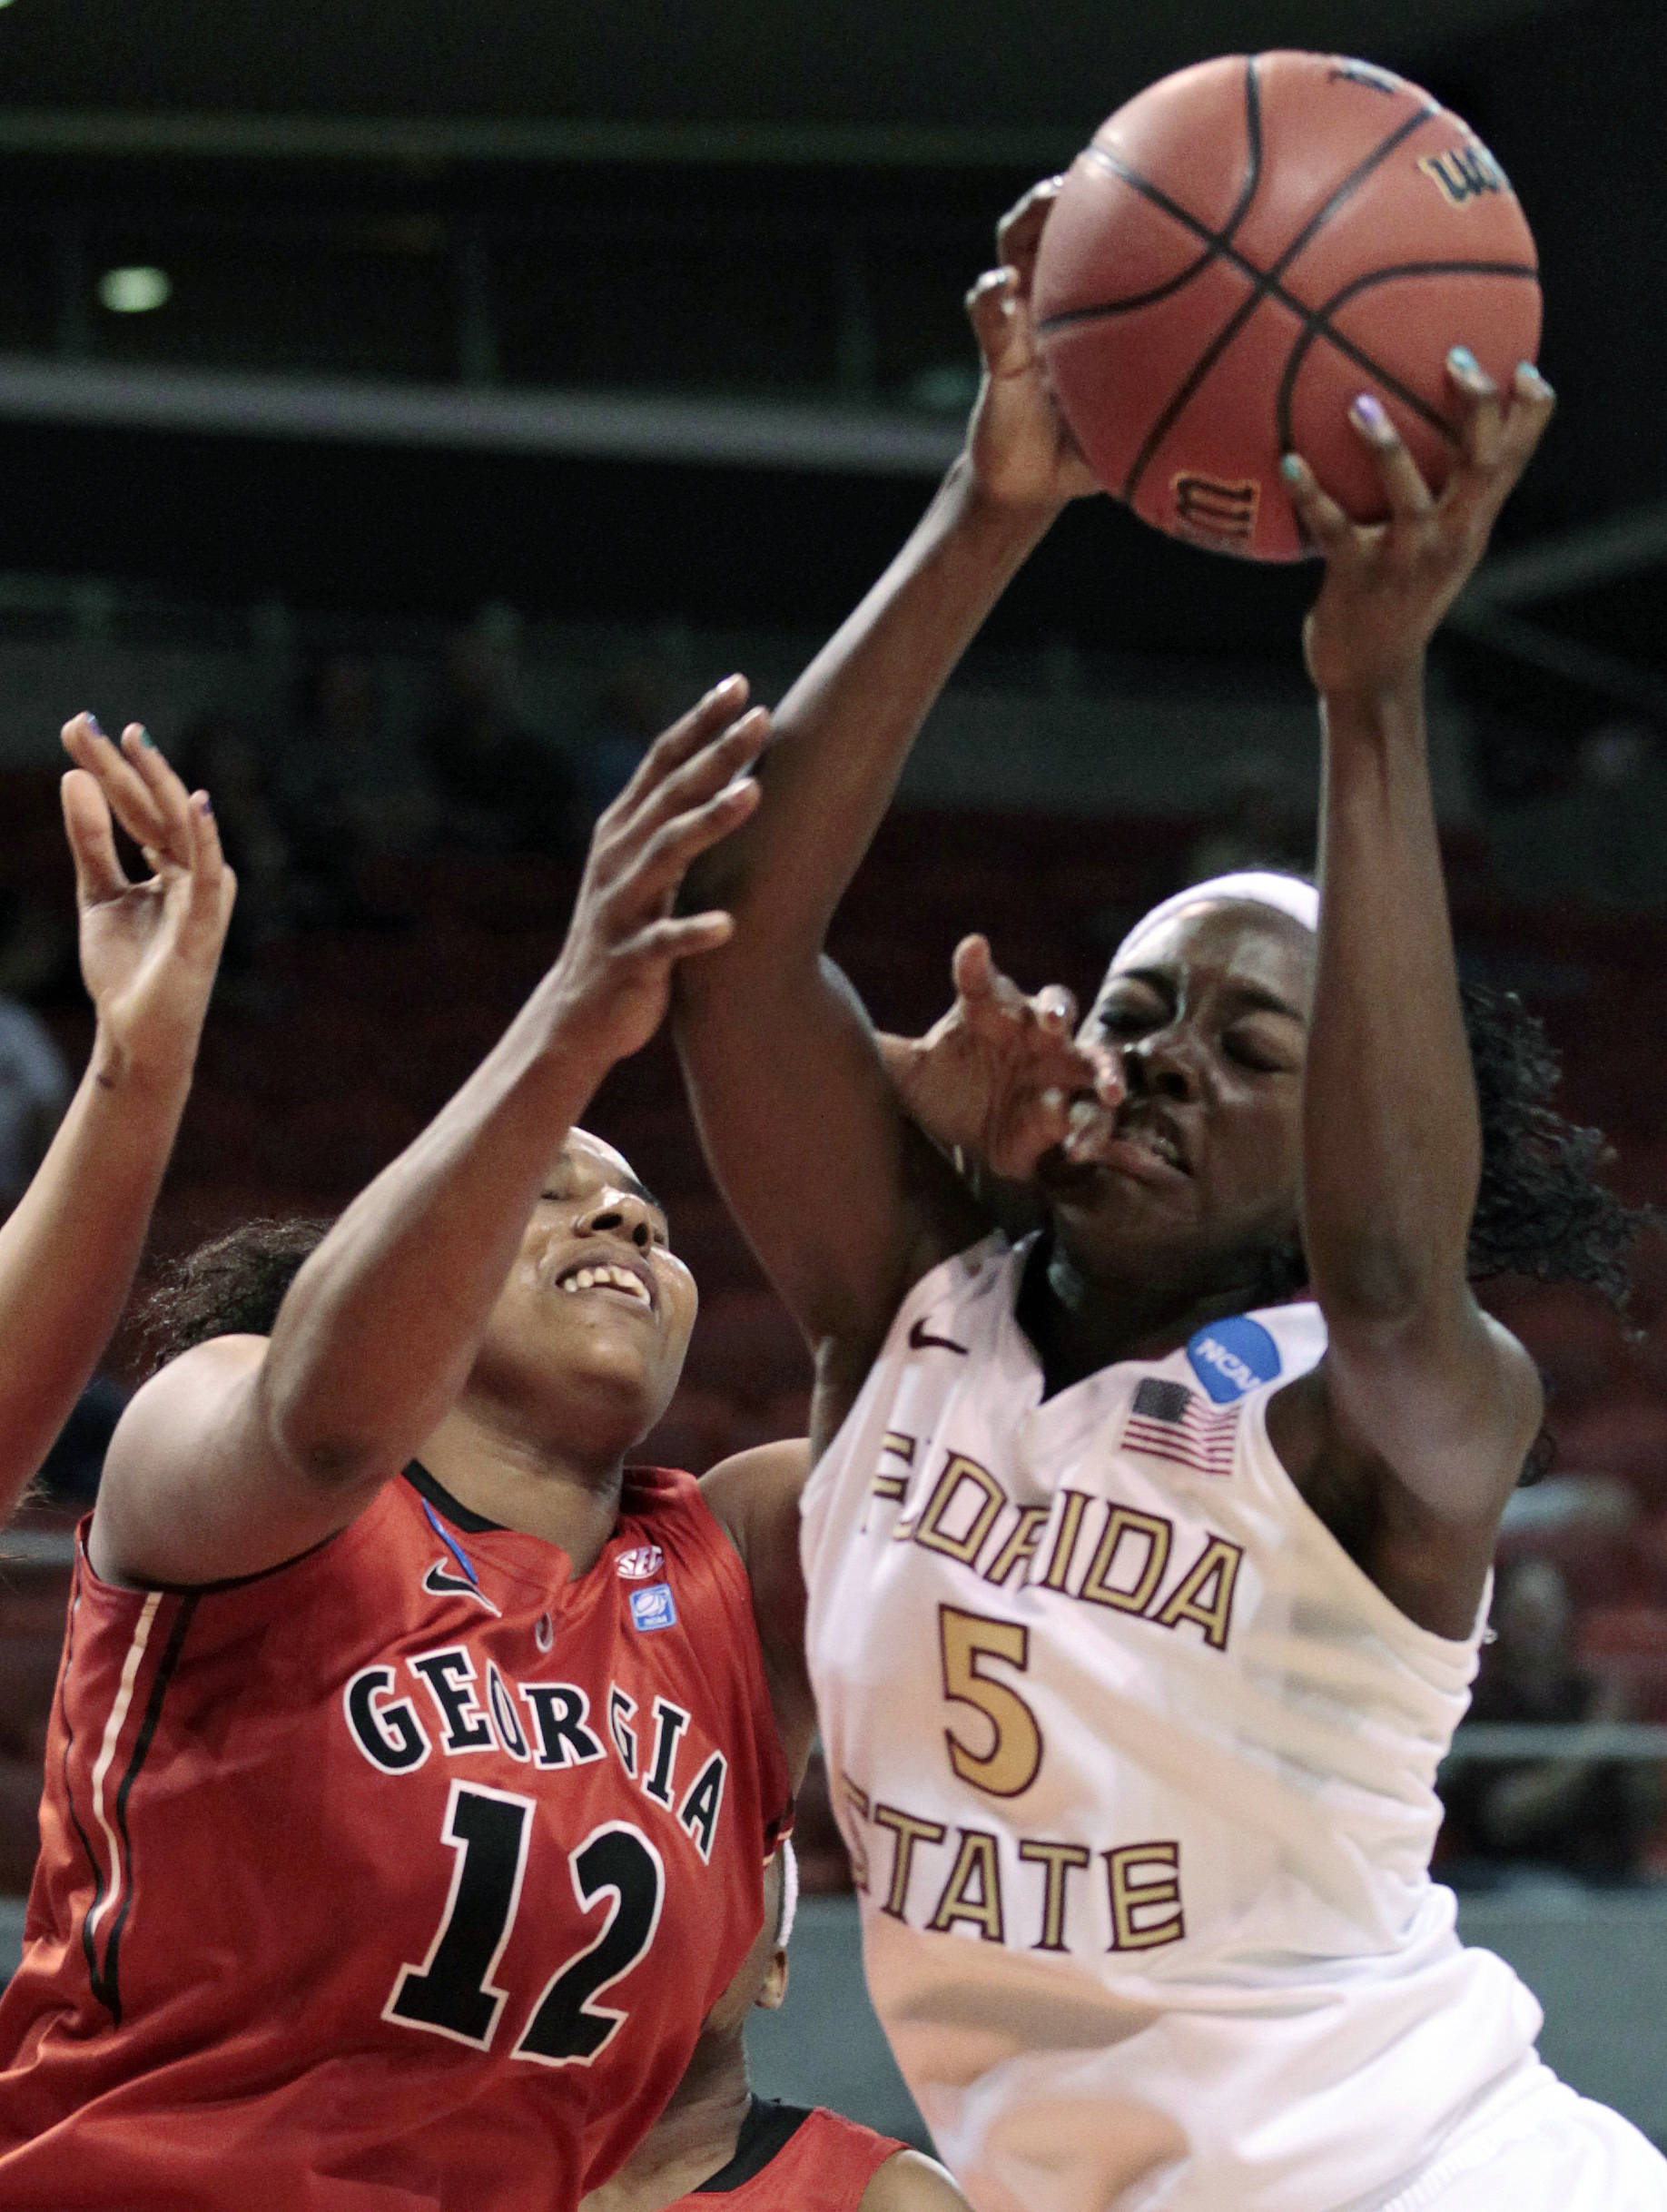 Florida State's Christian Hunnicutt (5) is fouled by Georgia's Courtney Ward (12)  in the first half of a second-round NCAA women's college basketball tournament game at Auburn Arena in Auburn, Ala., Tuesday, March 22, 2011.  (AP Photo/Dave Martin)